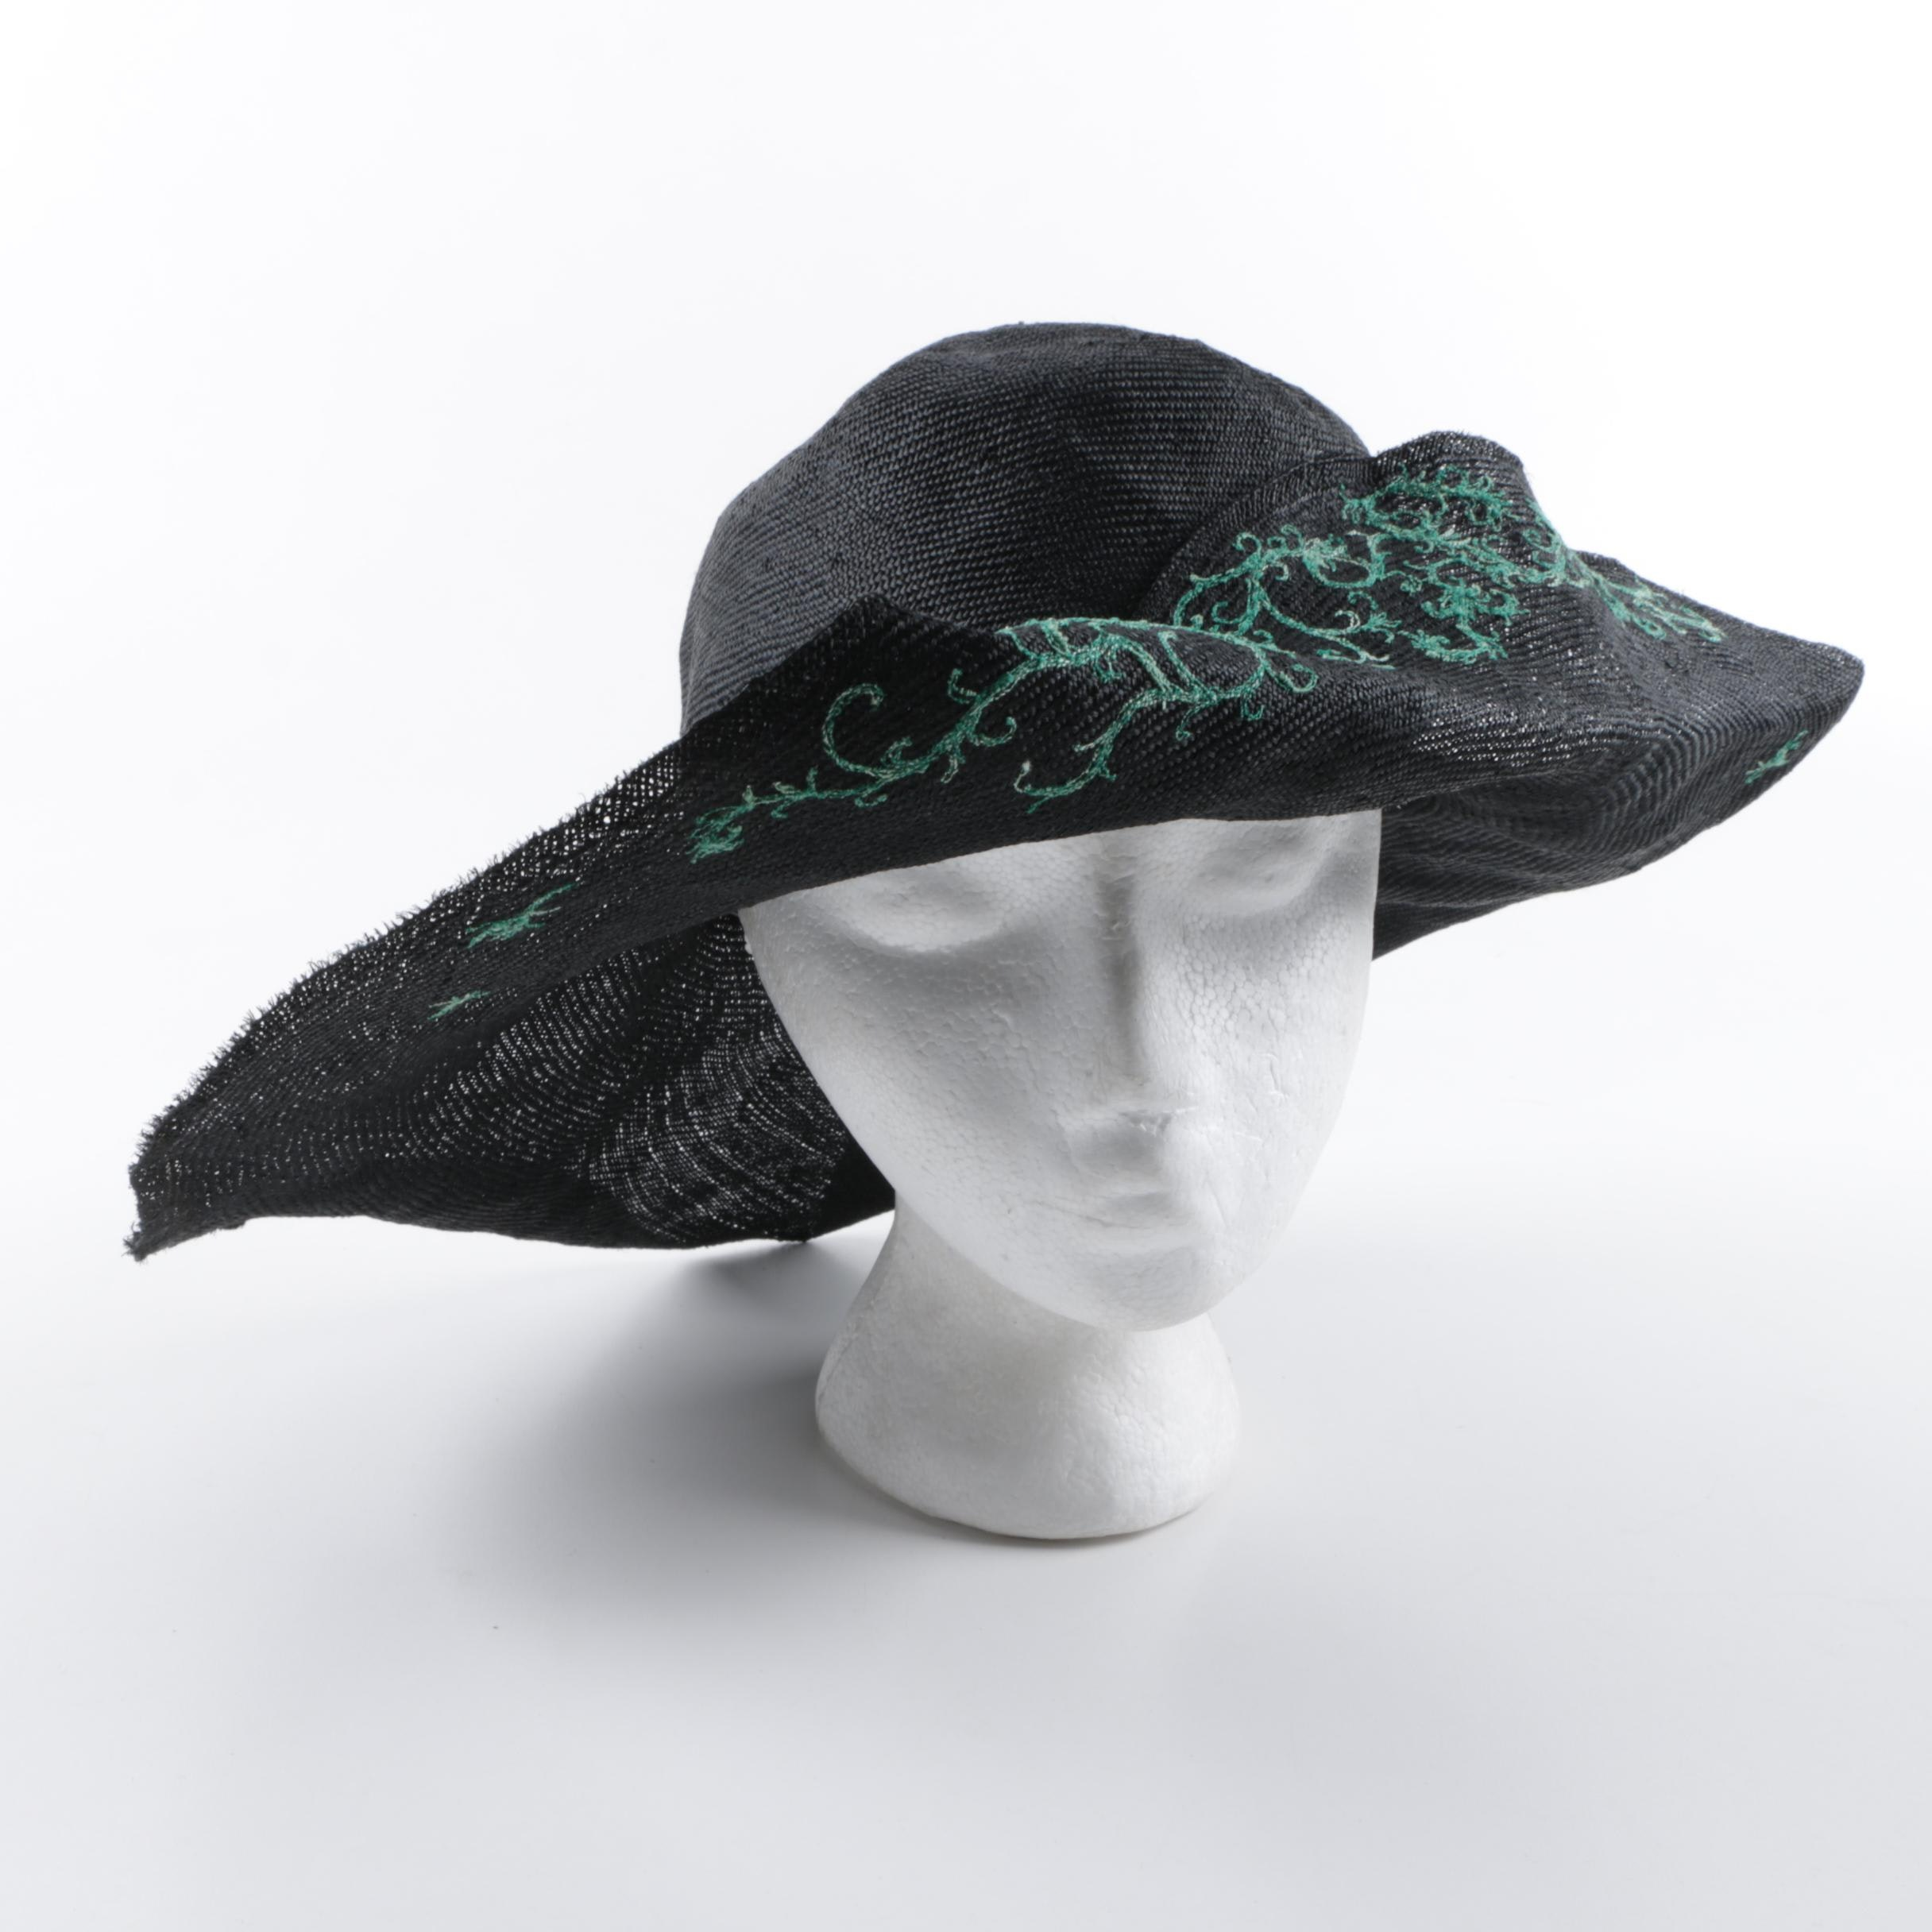 Vintage Fred Bare Black Sunhat with Embroidered Green Vines